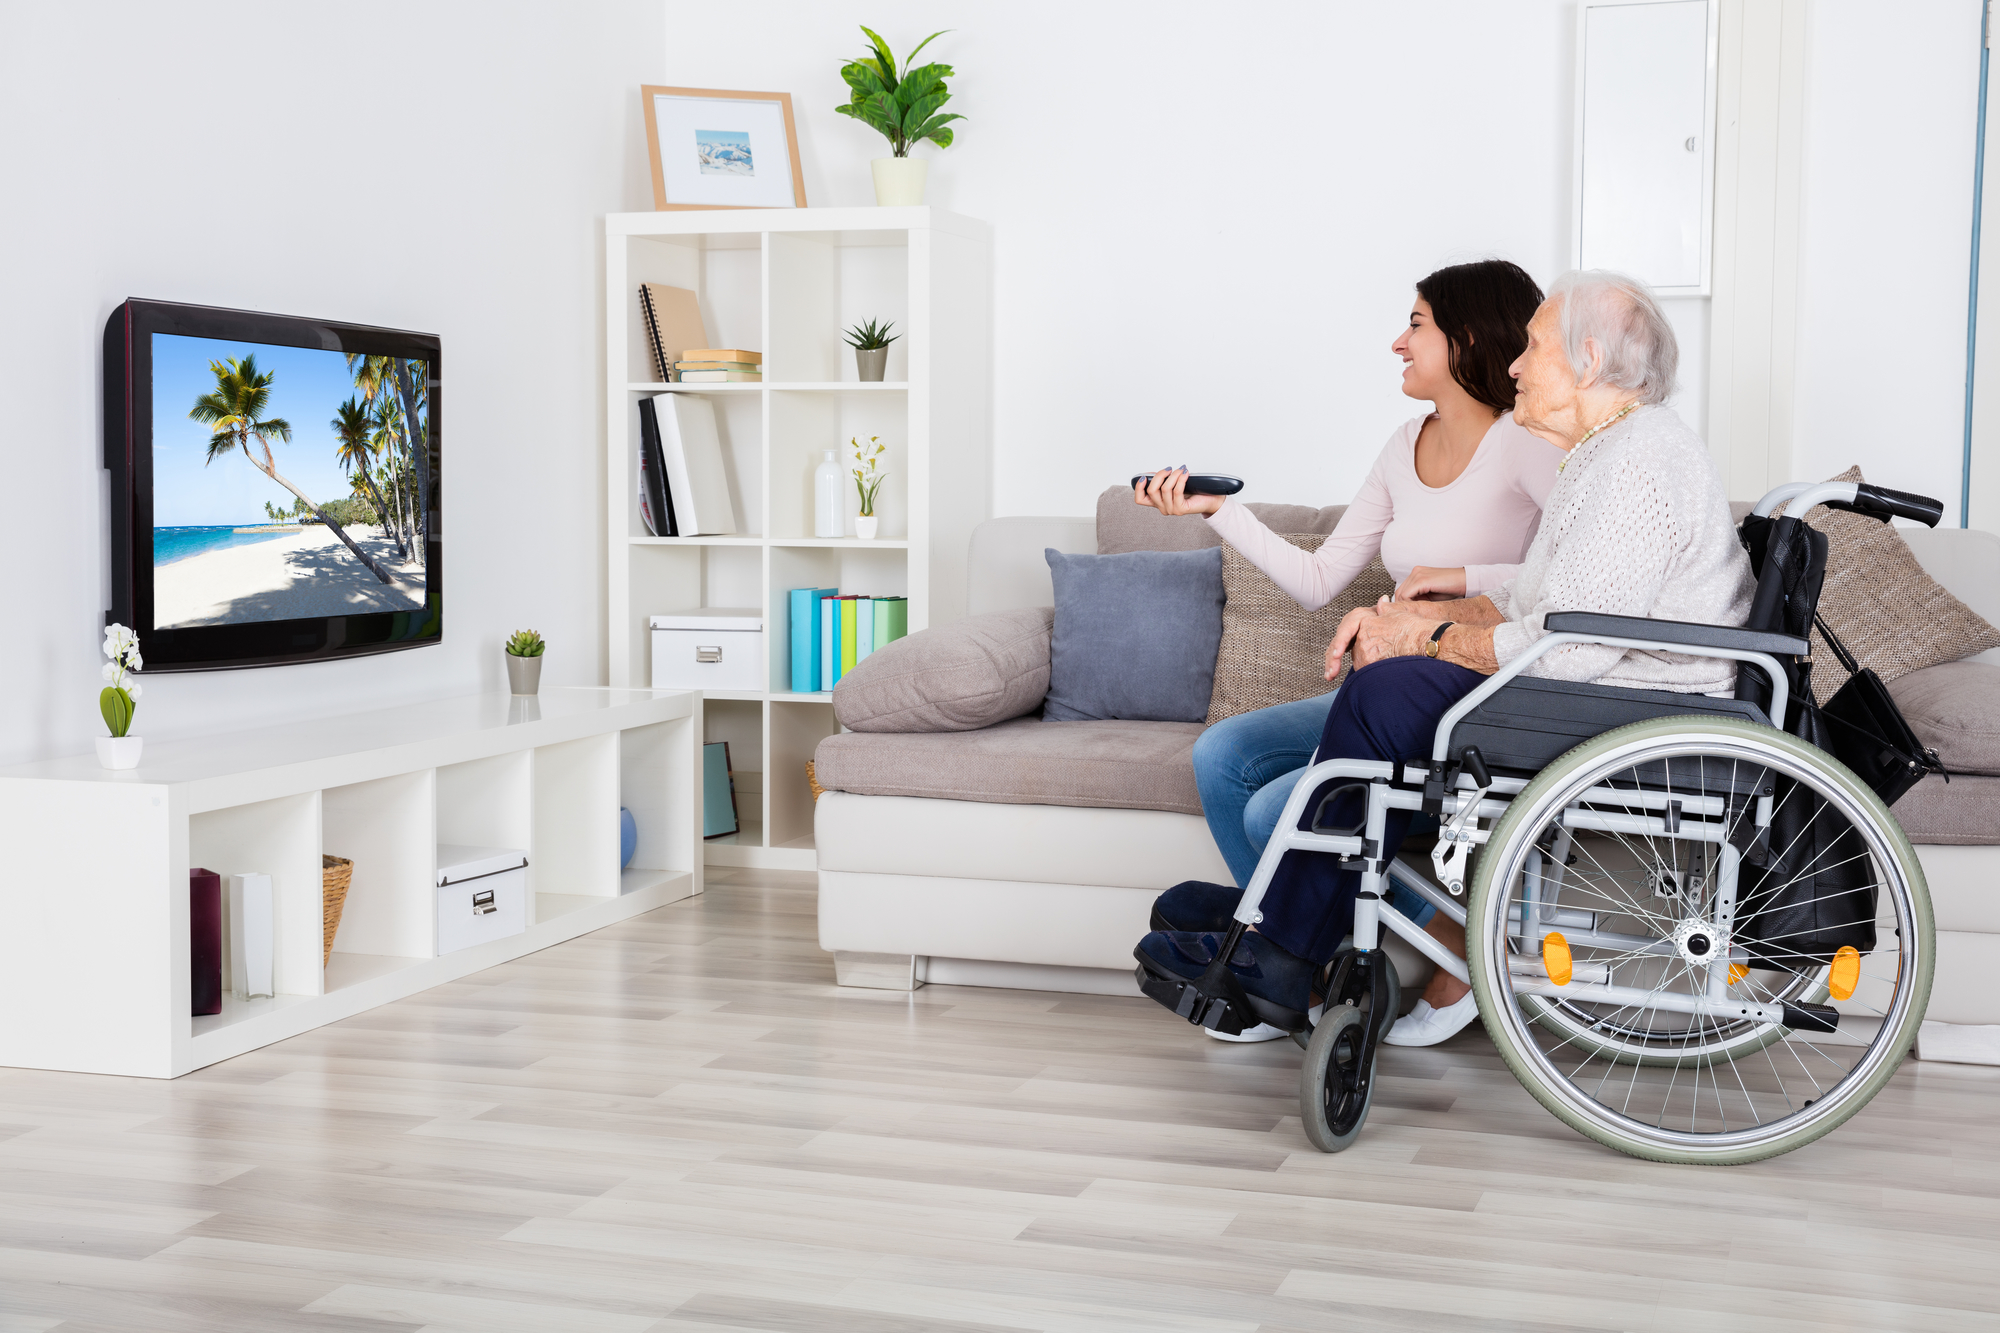 5 Factors To Consider When Designing A Home For Seniors St Evans Inc Fenton Nearsay